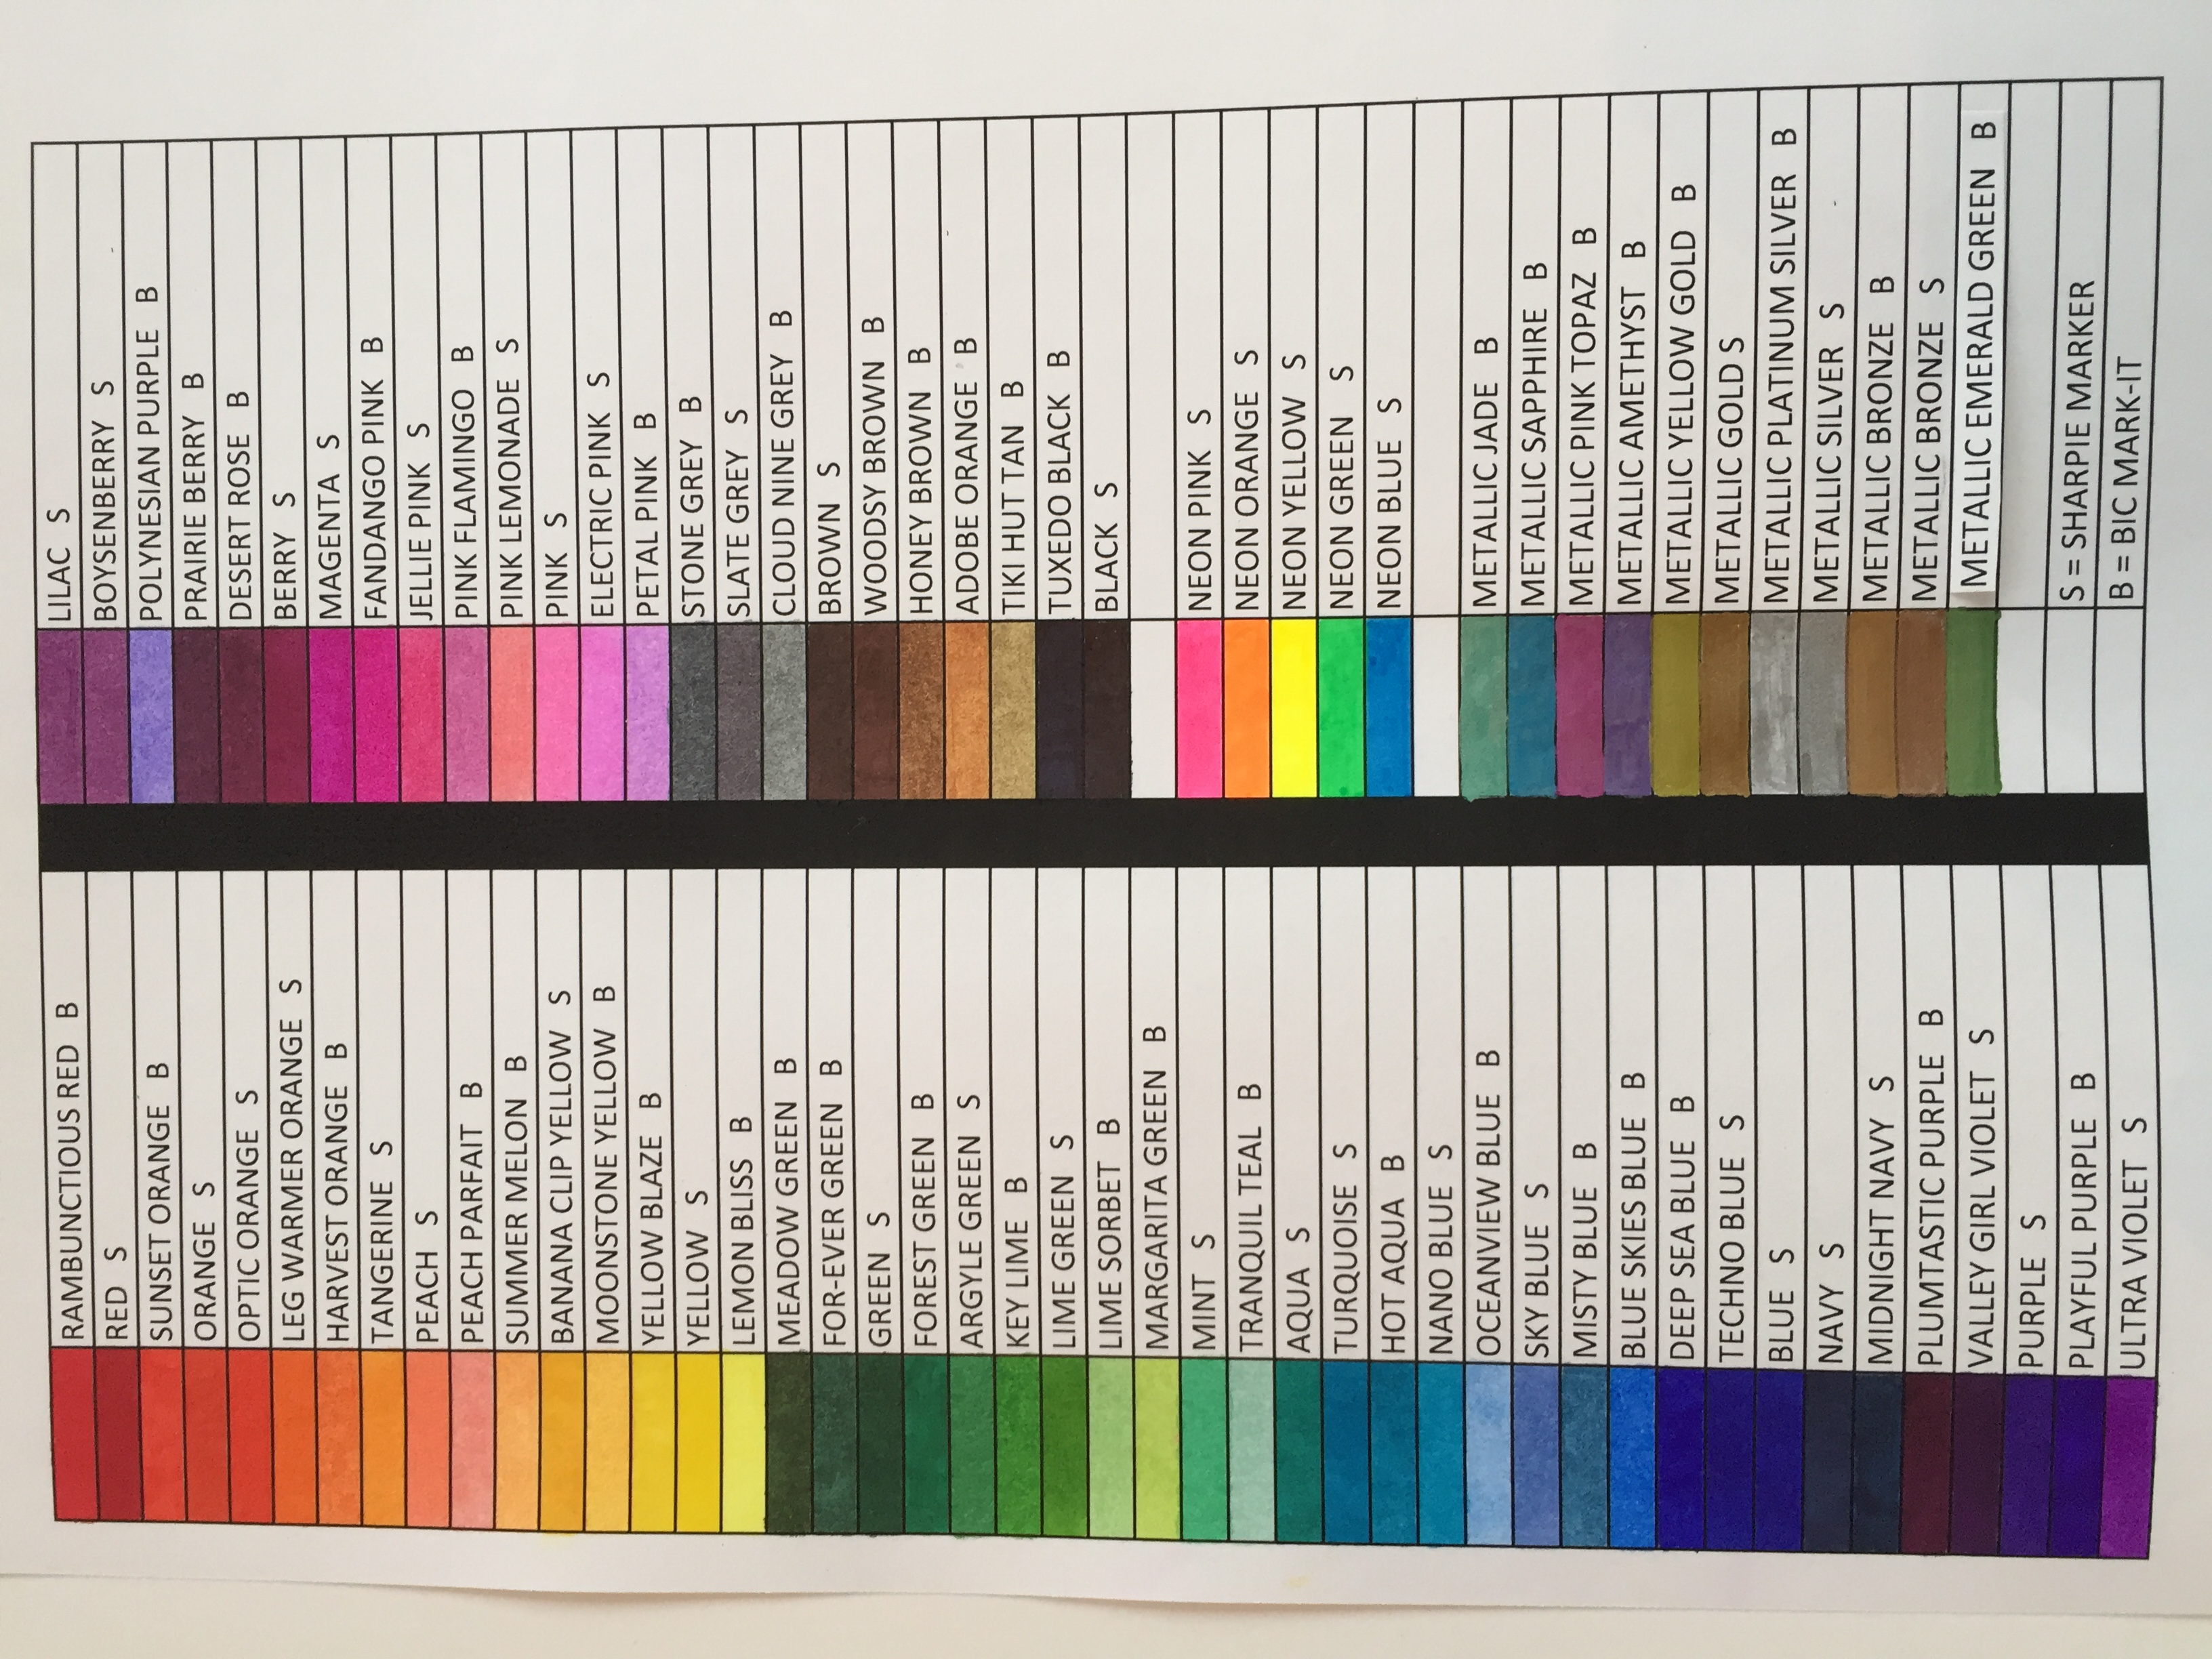 color chart for bic mark it and sharpie markers